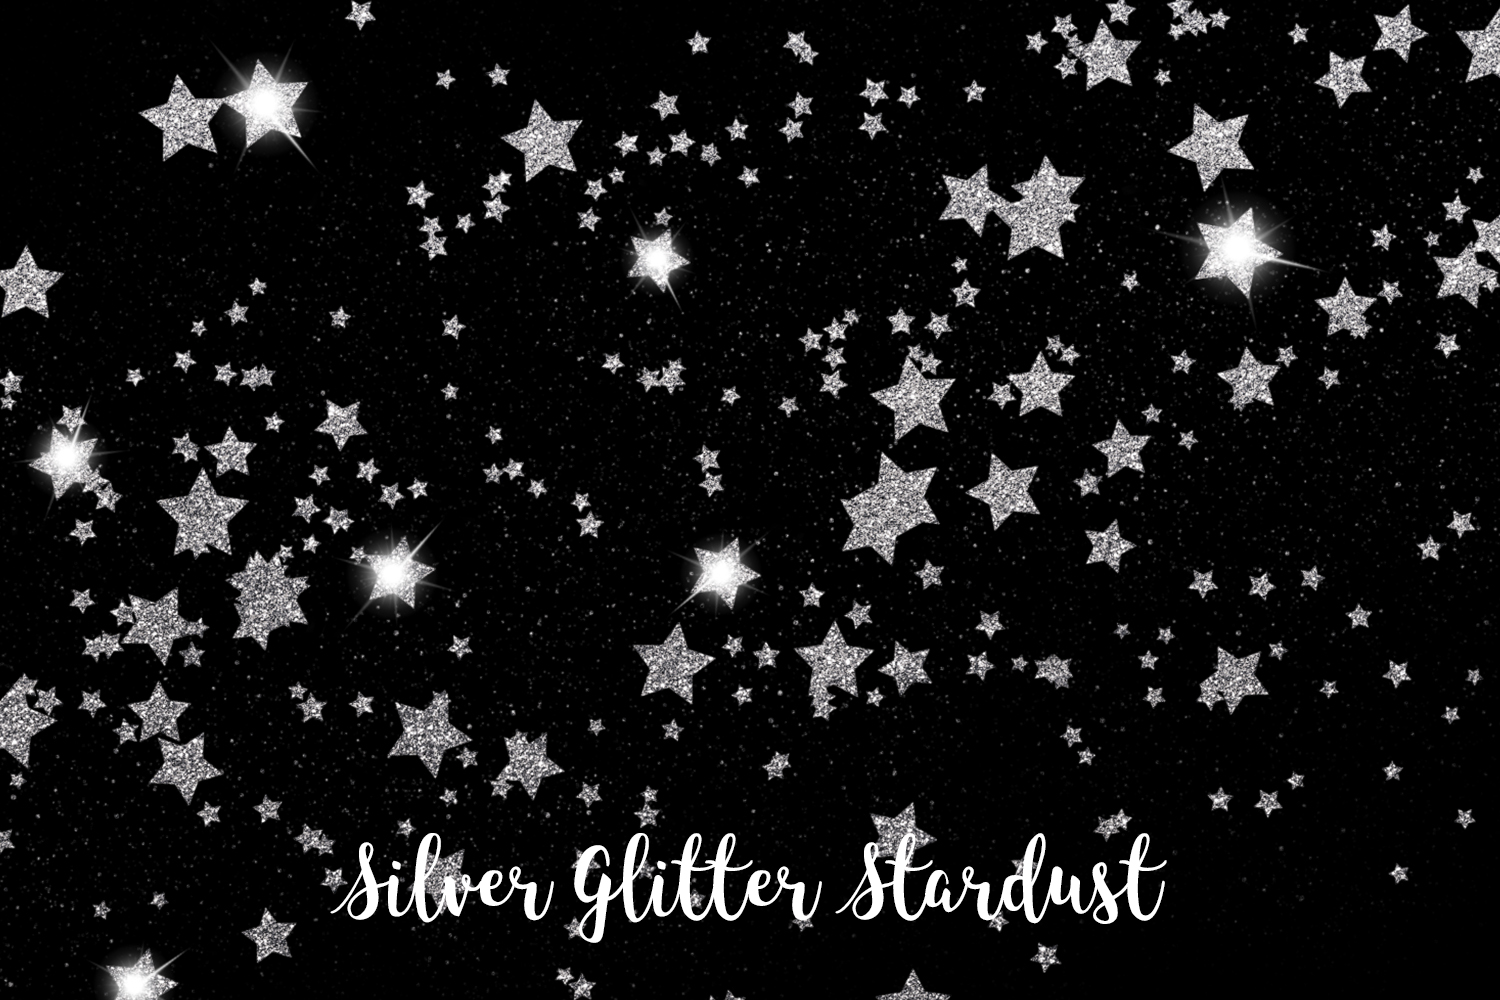 Silver Glitter Stardust, Transparent PNG example image 4